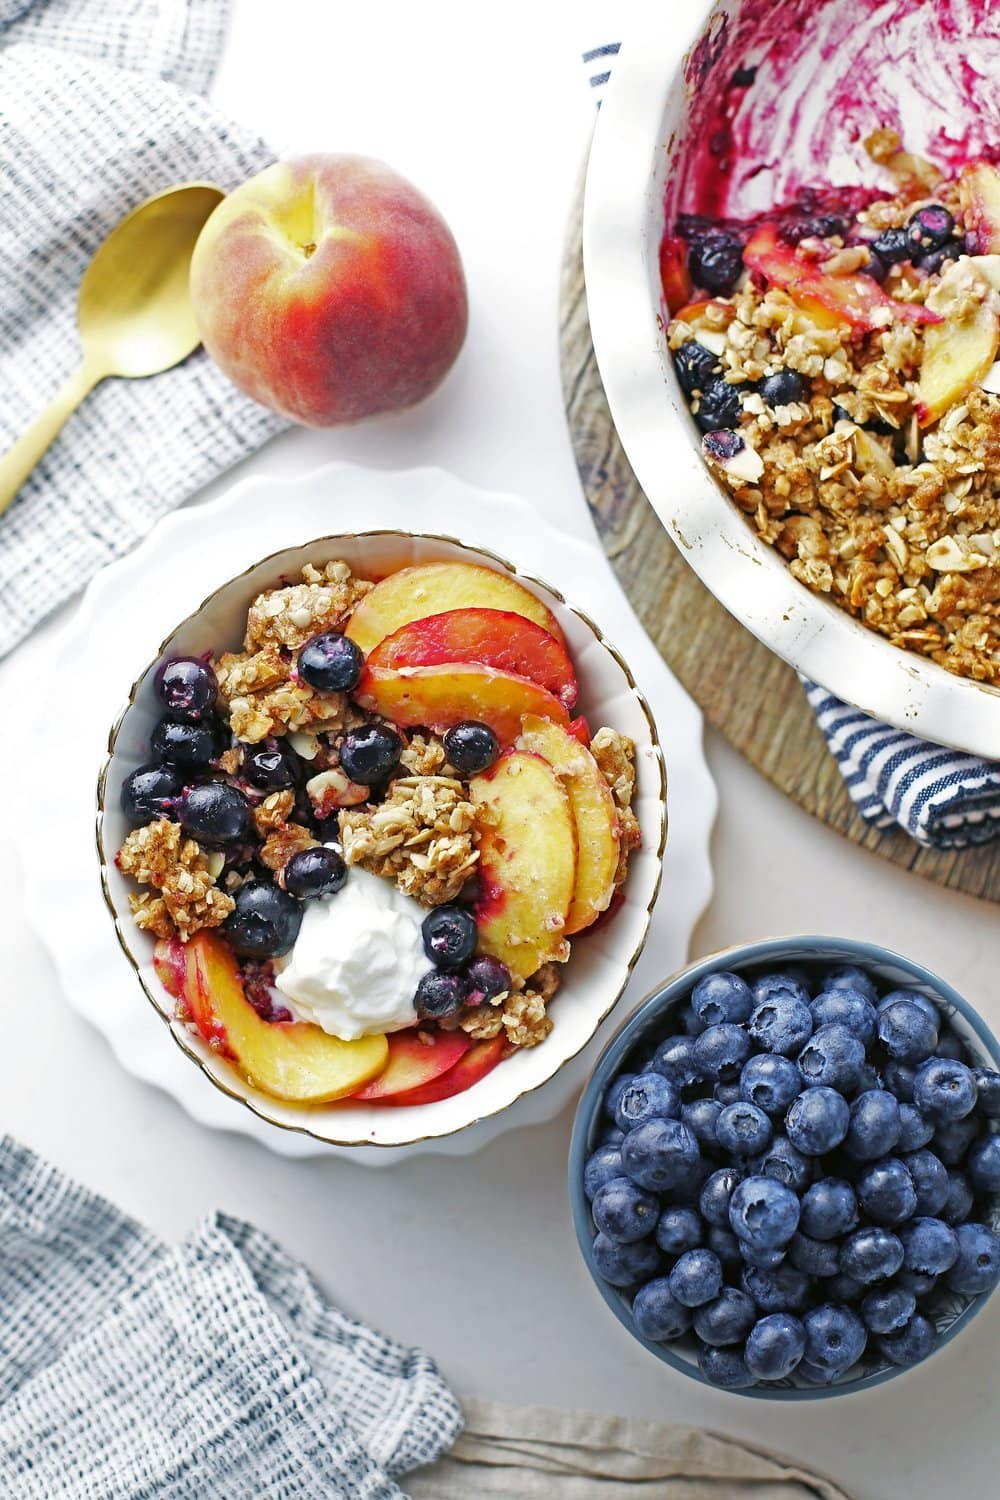 Blueberry Peach Crisp with Almond Oat Topping